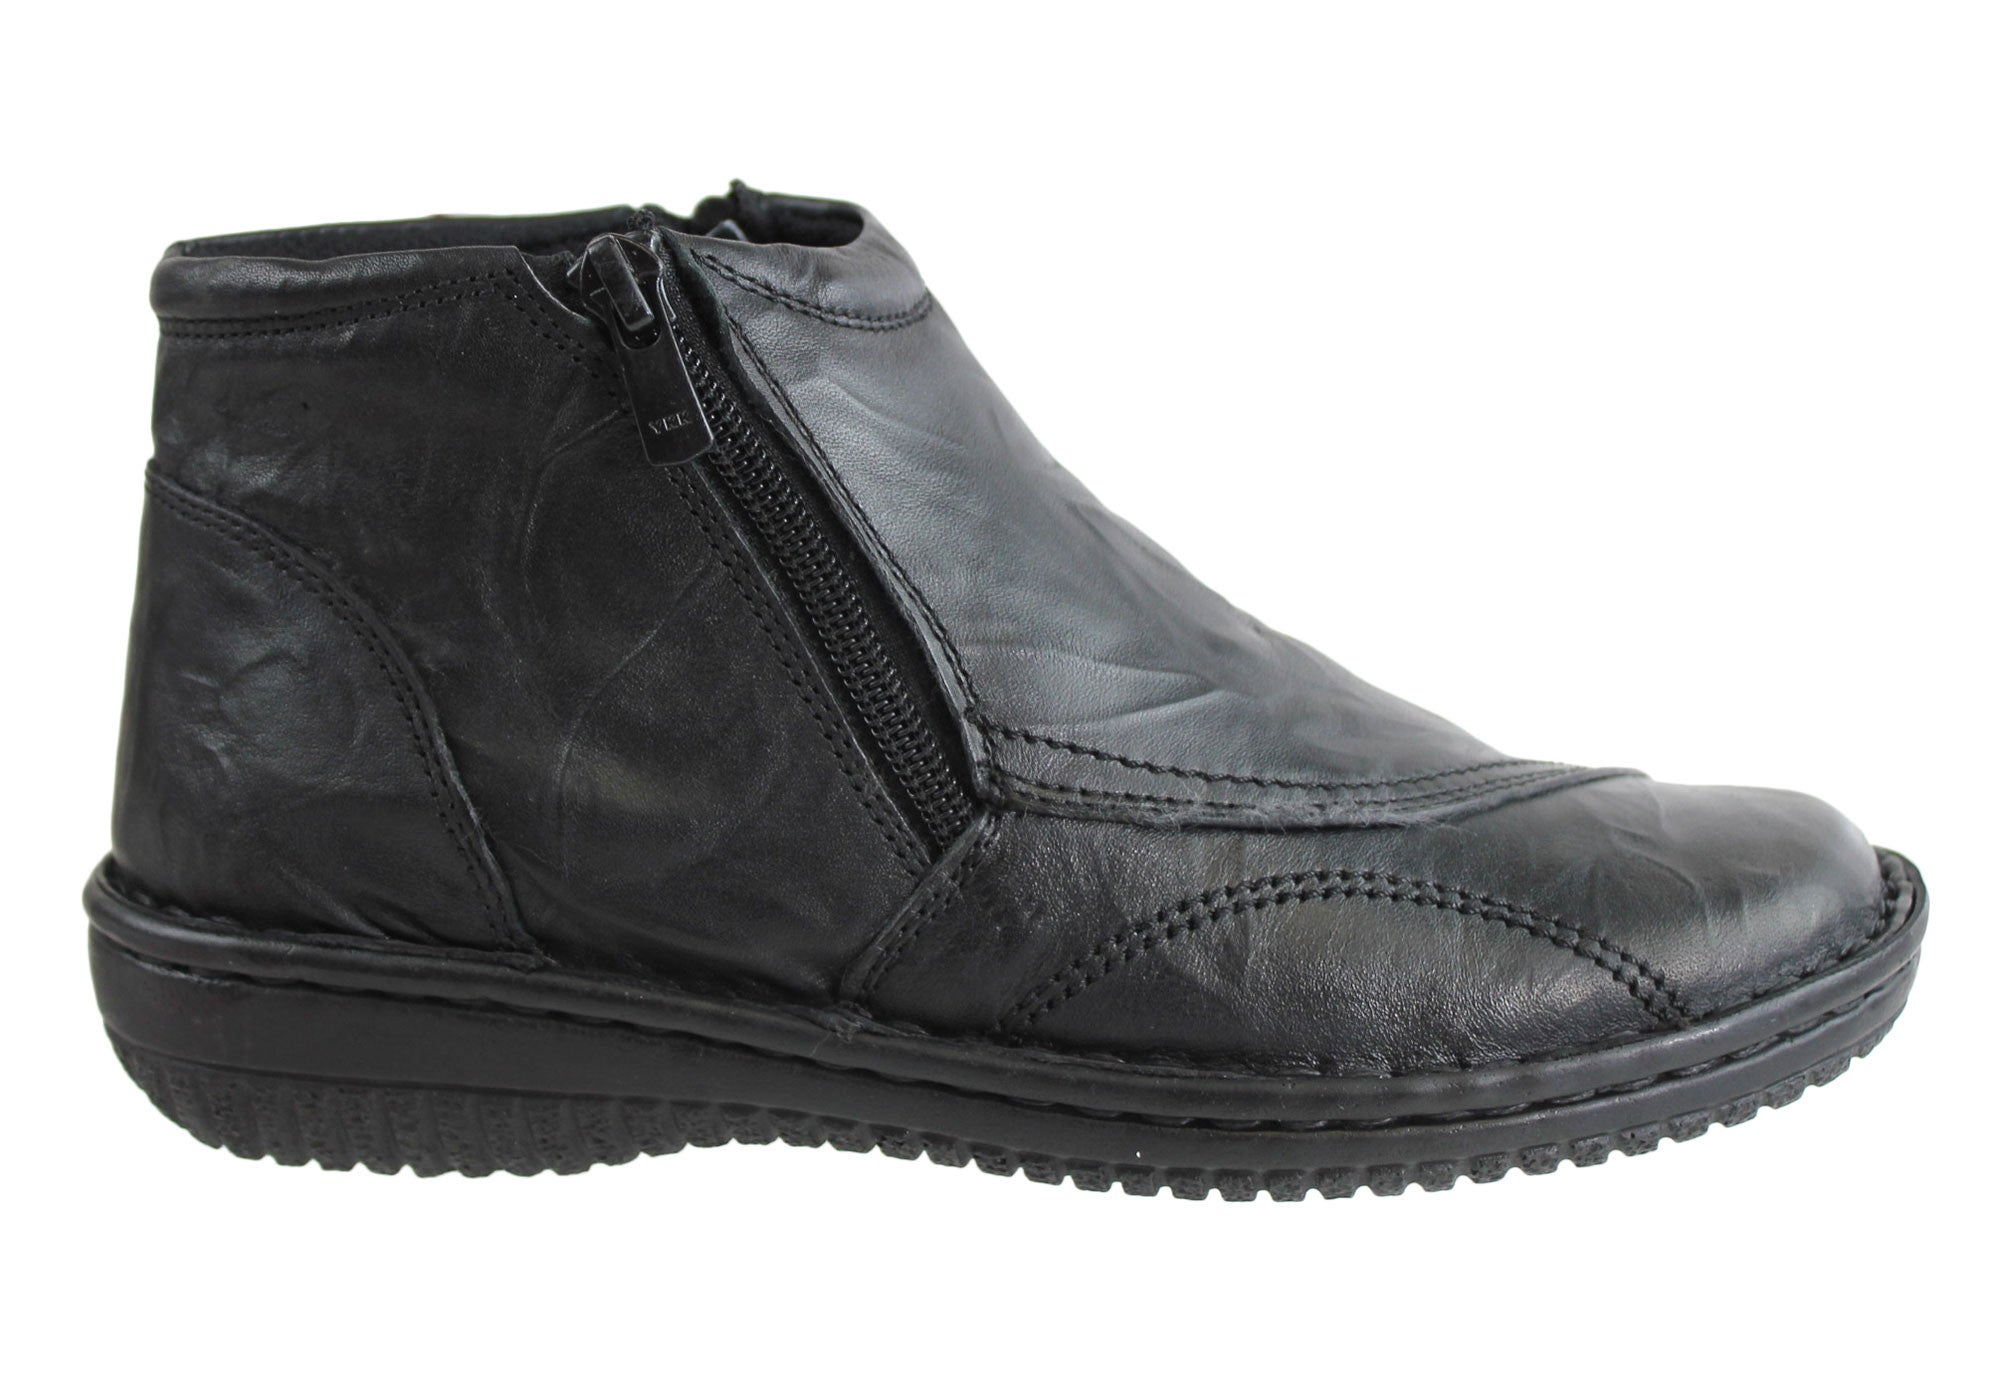 NEW CABELLO COMFORT 5250-27 WOMENS LEATHER BOOTS MADE IN IN IN TURKEY 1a1b56